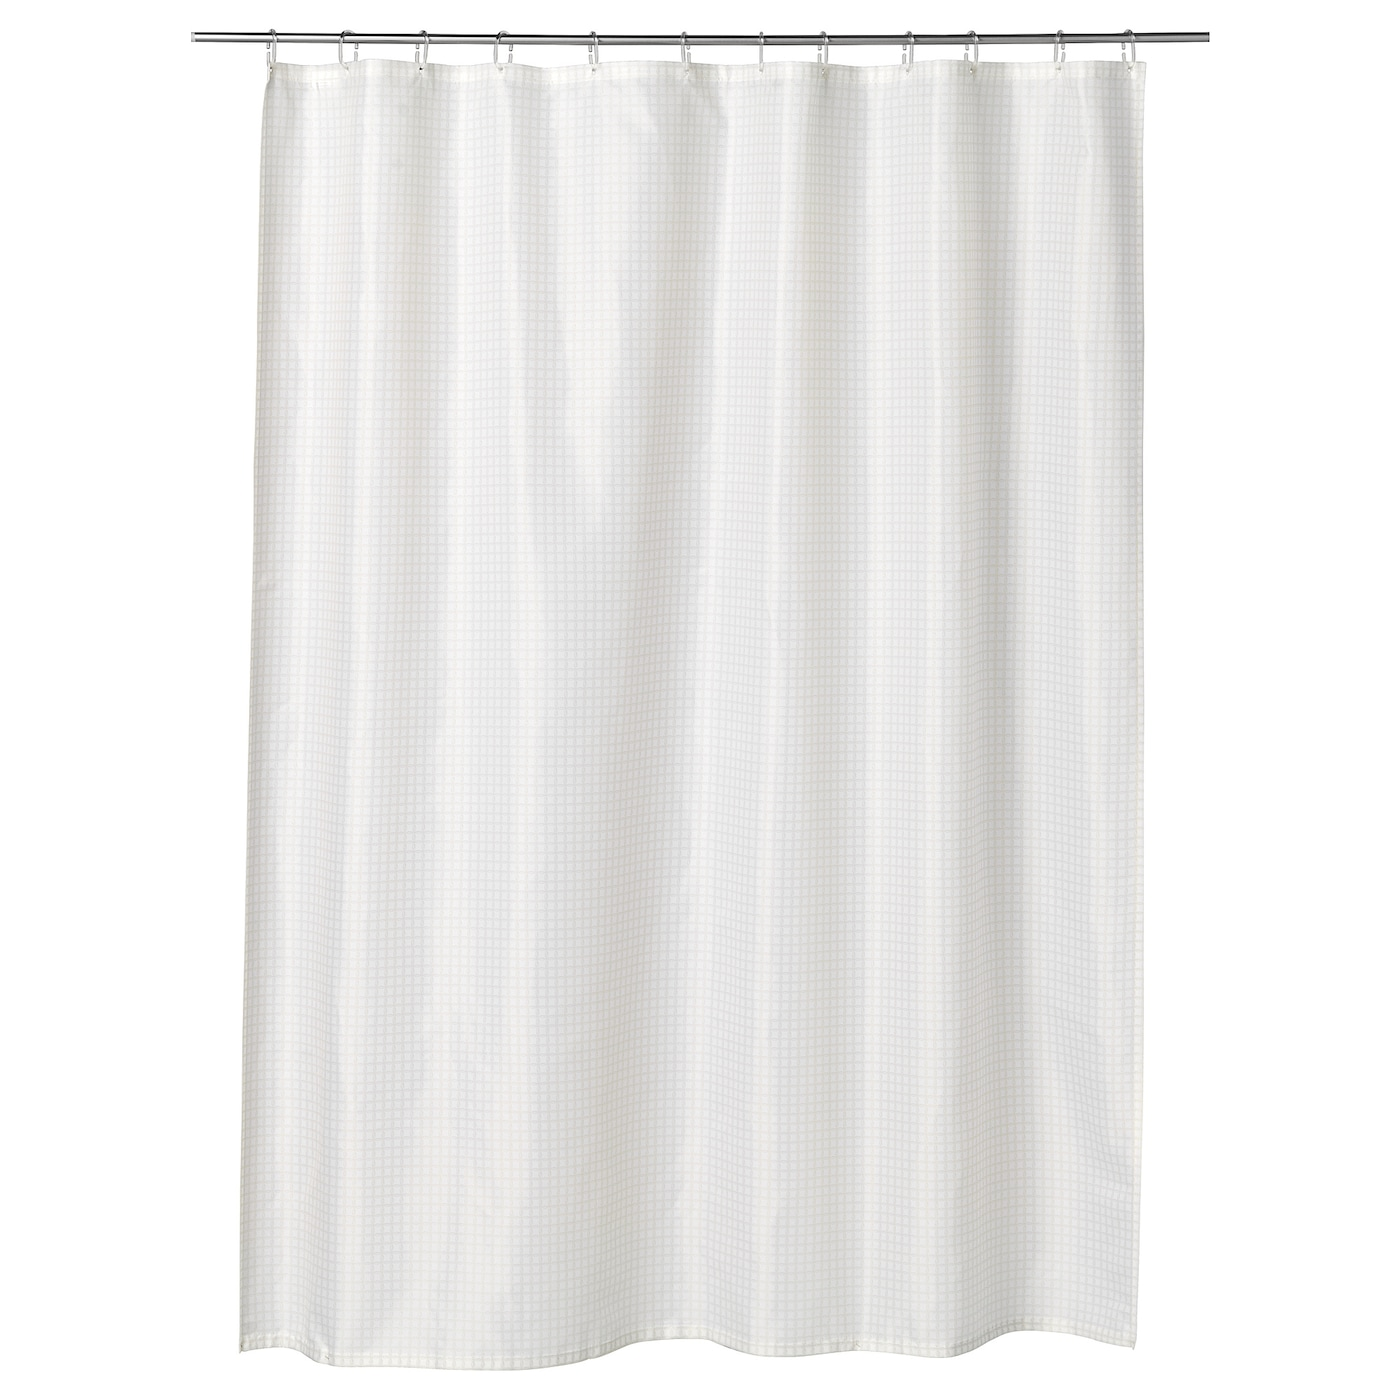 IKEA SAXÄLVEN shower curtain Densely-woven polyester fabric with water-repellent coating.